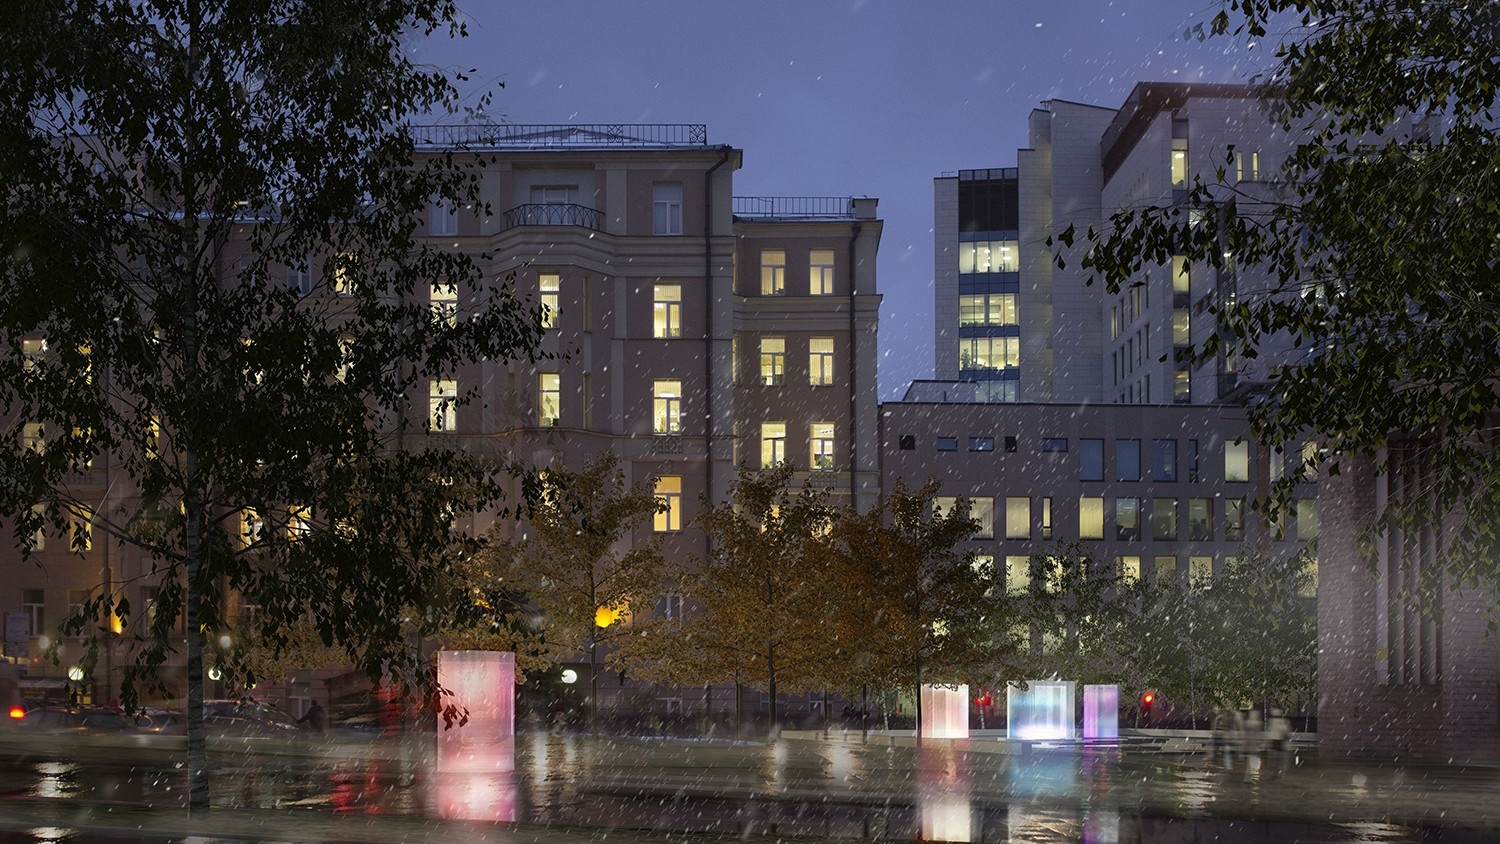 https://stevenholl.sfo2.digitaloceanspaces.com/uploads/projects/project-images/SHA_MoscowMasterplan_WH5.jpg